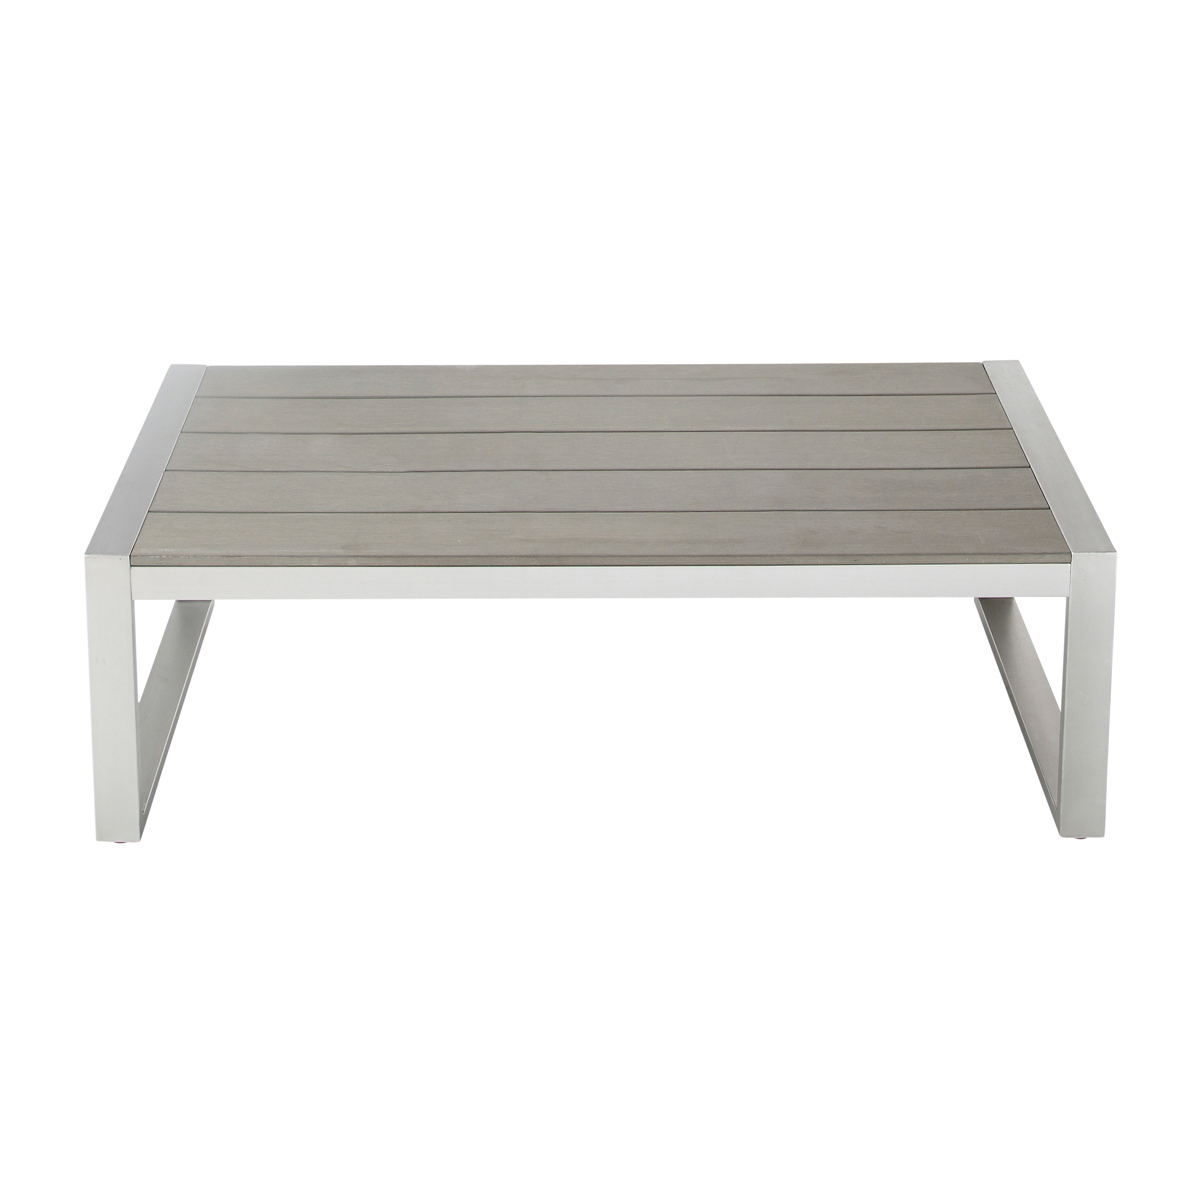 Photo table basse de jardin - Table basse salon de jardin ...